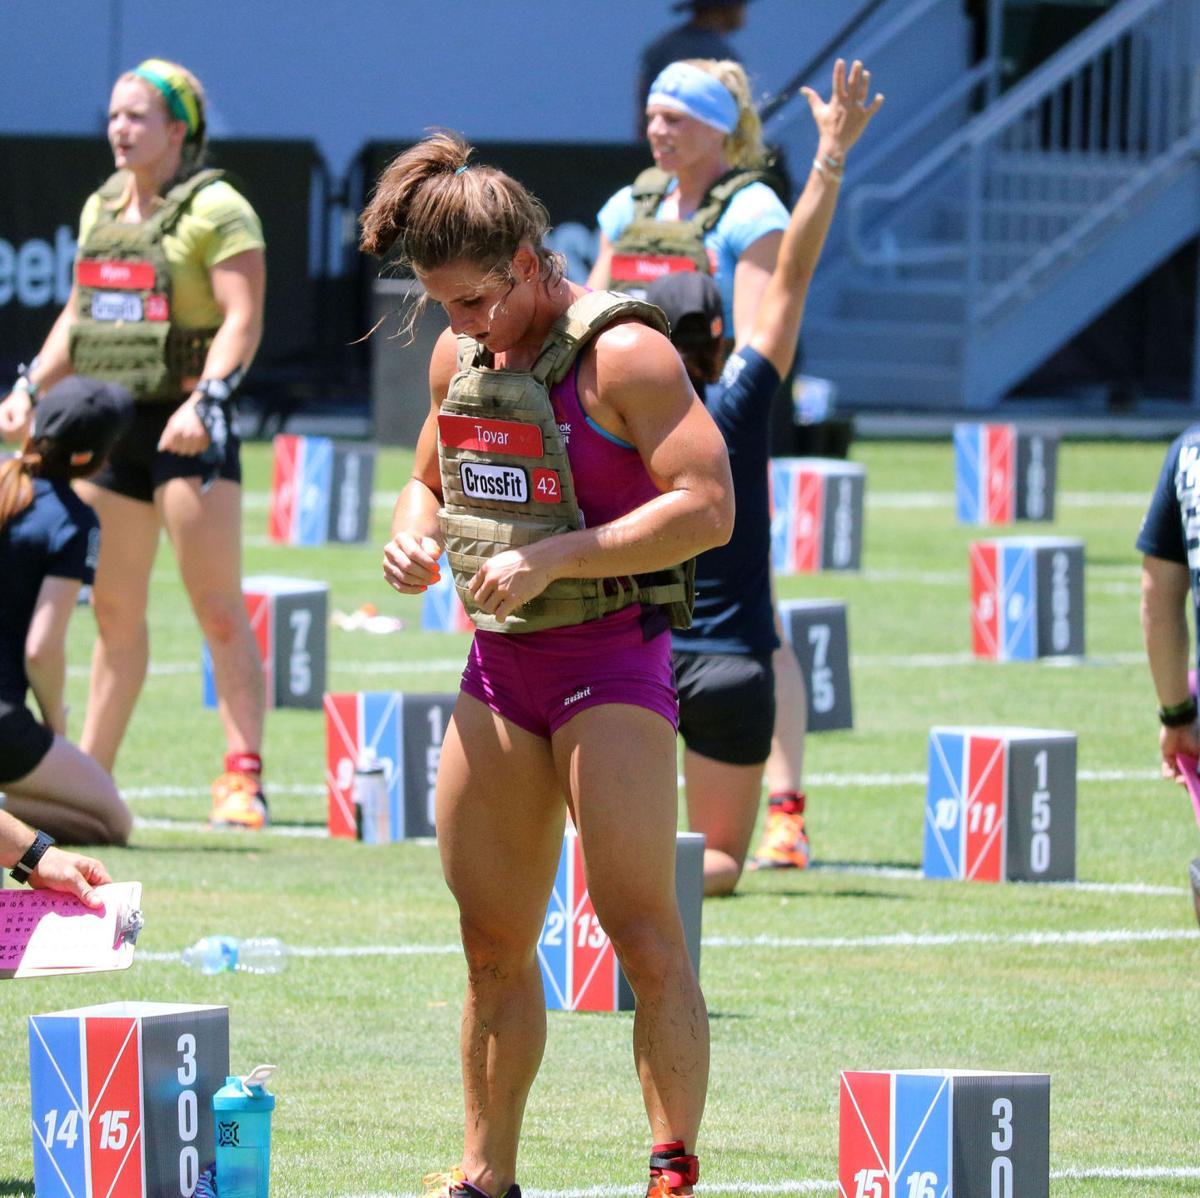 Tovar Earns Personal Best Finish At Grueling Crossfit